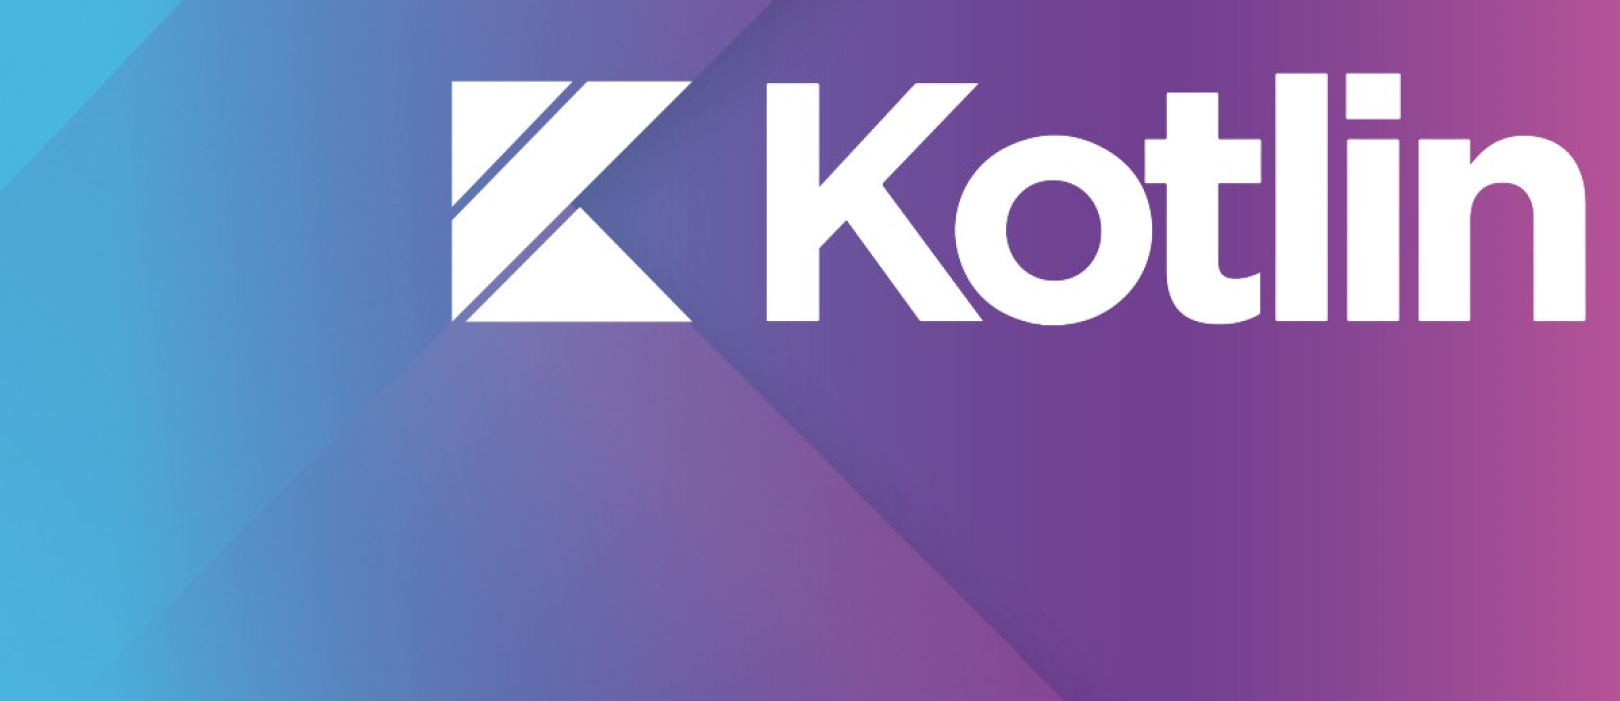 Frame 1 8 - Kotlin for Android Apps: Pros and Cons of Programming Language